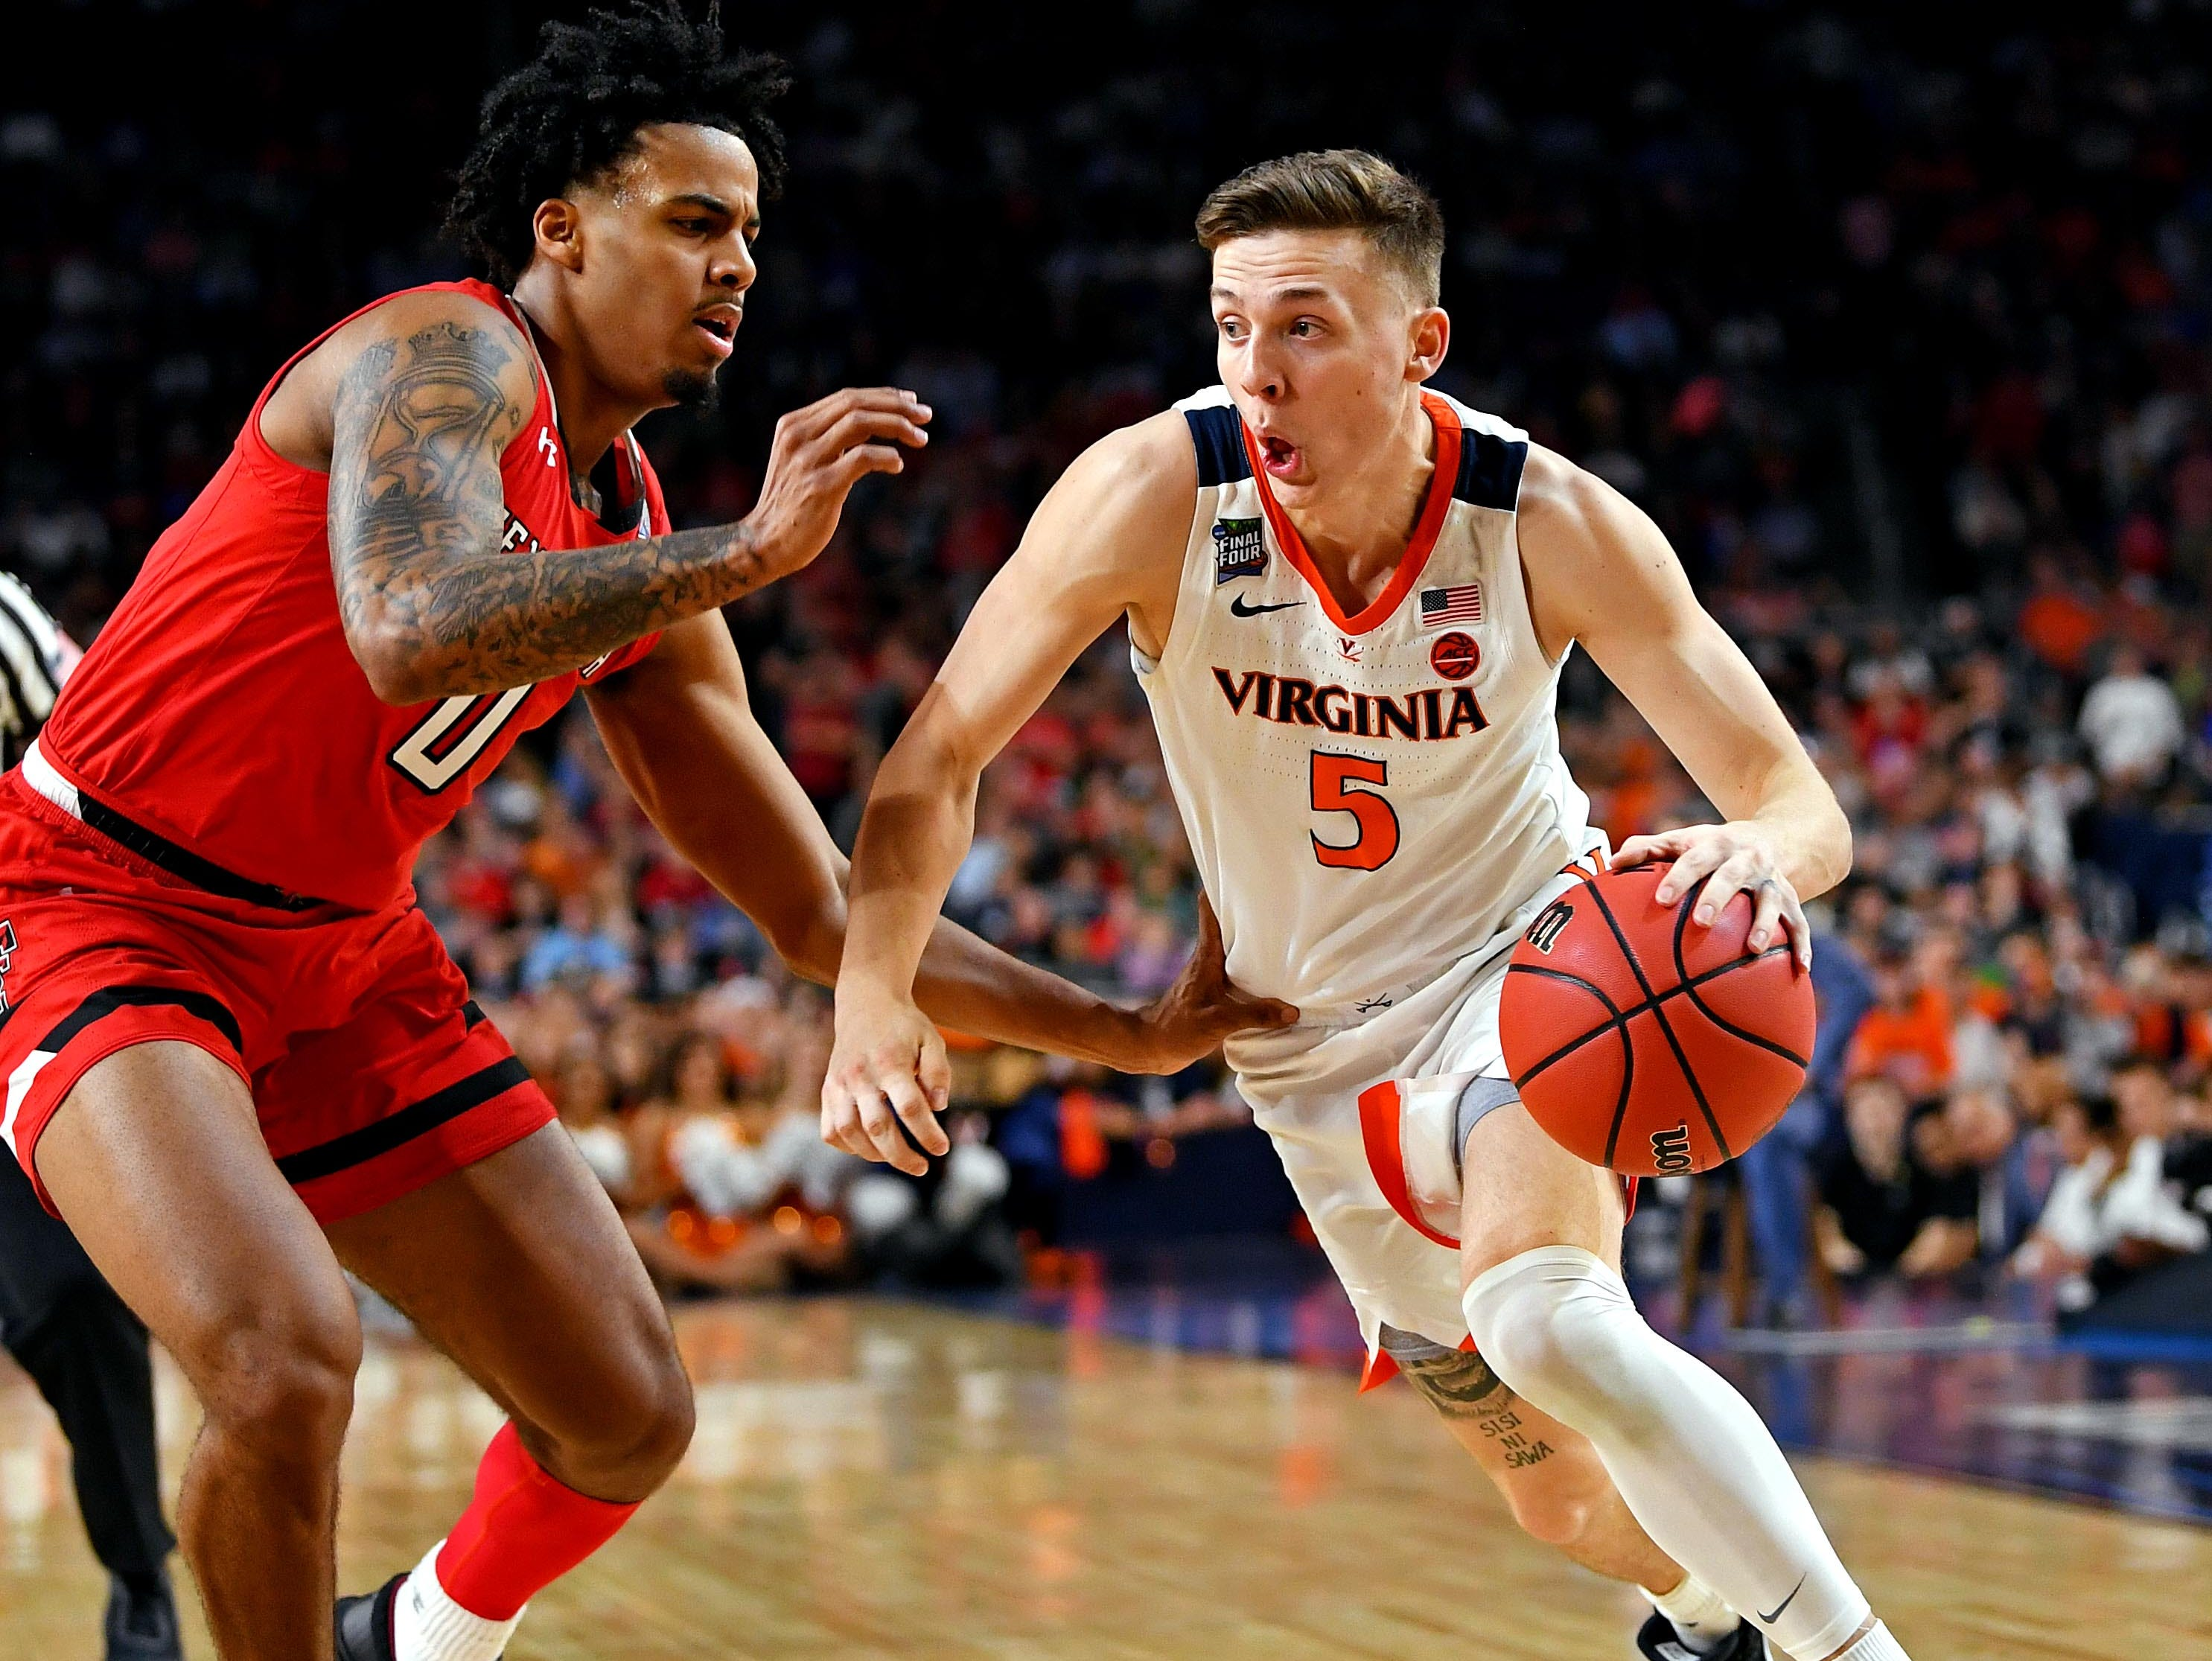 Apr 8, 2019; Minneapolis, MN, USA; Virginia Cavaliers guard Kyle Guy (5) drives to the basket against Texas Tech Red Raiders guard Kyler Edwards (0) during the first half in the championship game of the 2019 men's Final Four at US Bank Stadium. Mandatory Credit: Bob Donnan-USA TODAY Sports